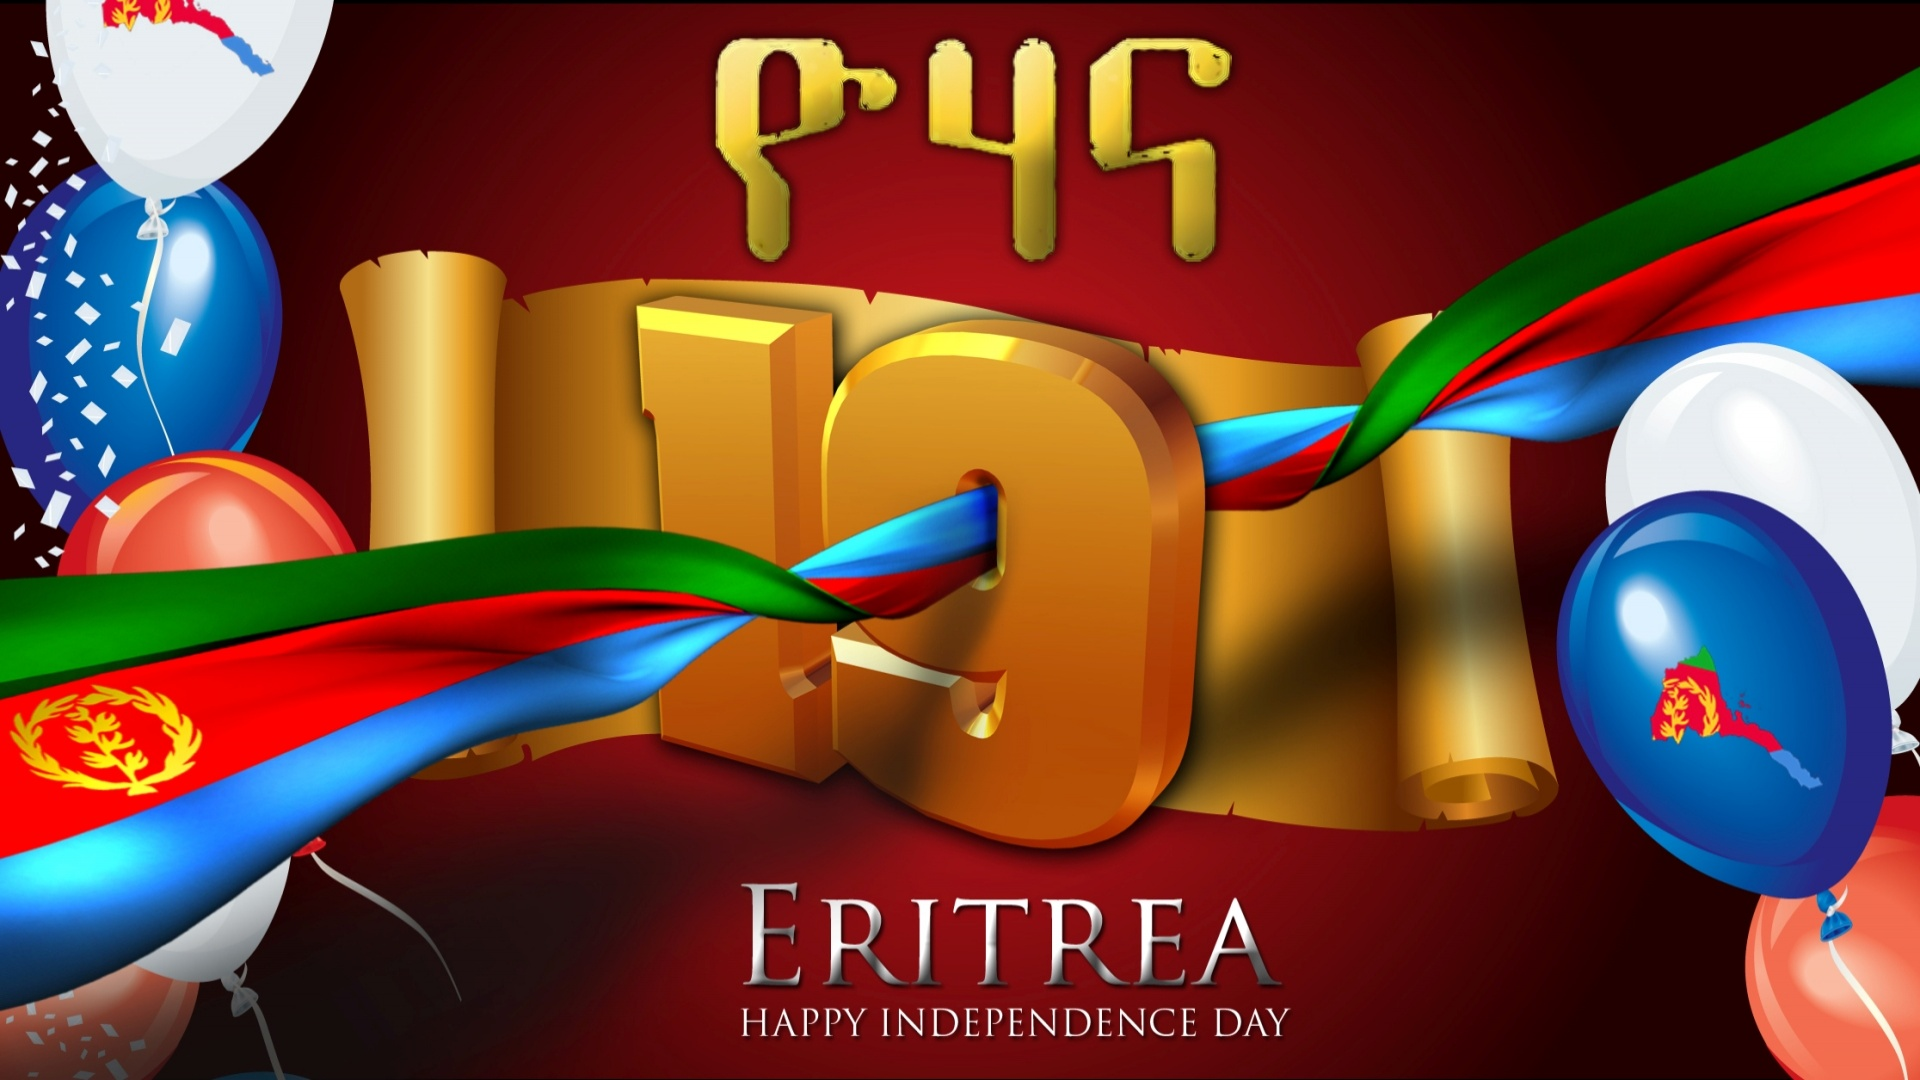 Eritrean Independence Day Wallpapers   1920x1080   382778 1920x1080